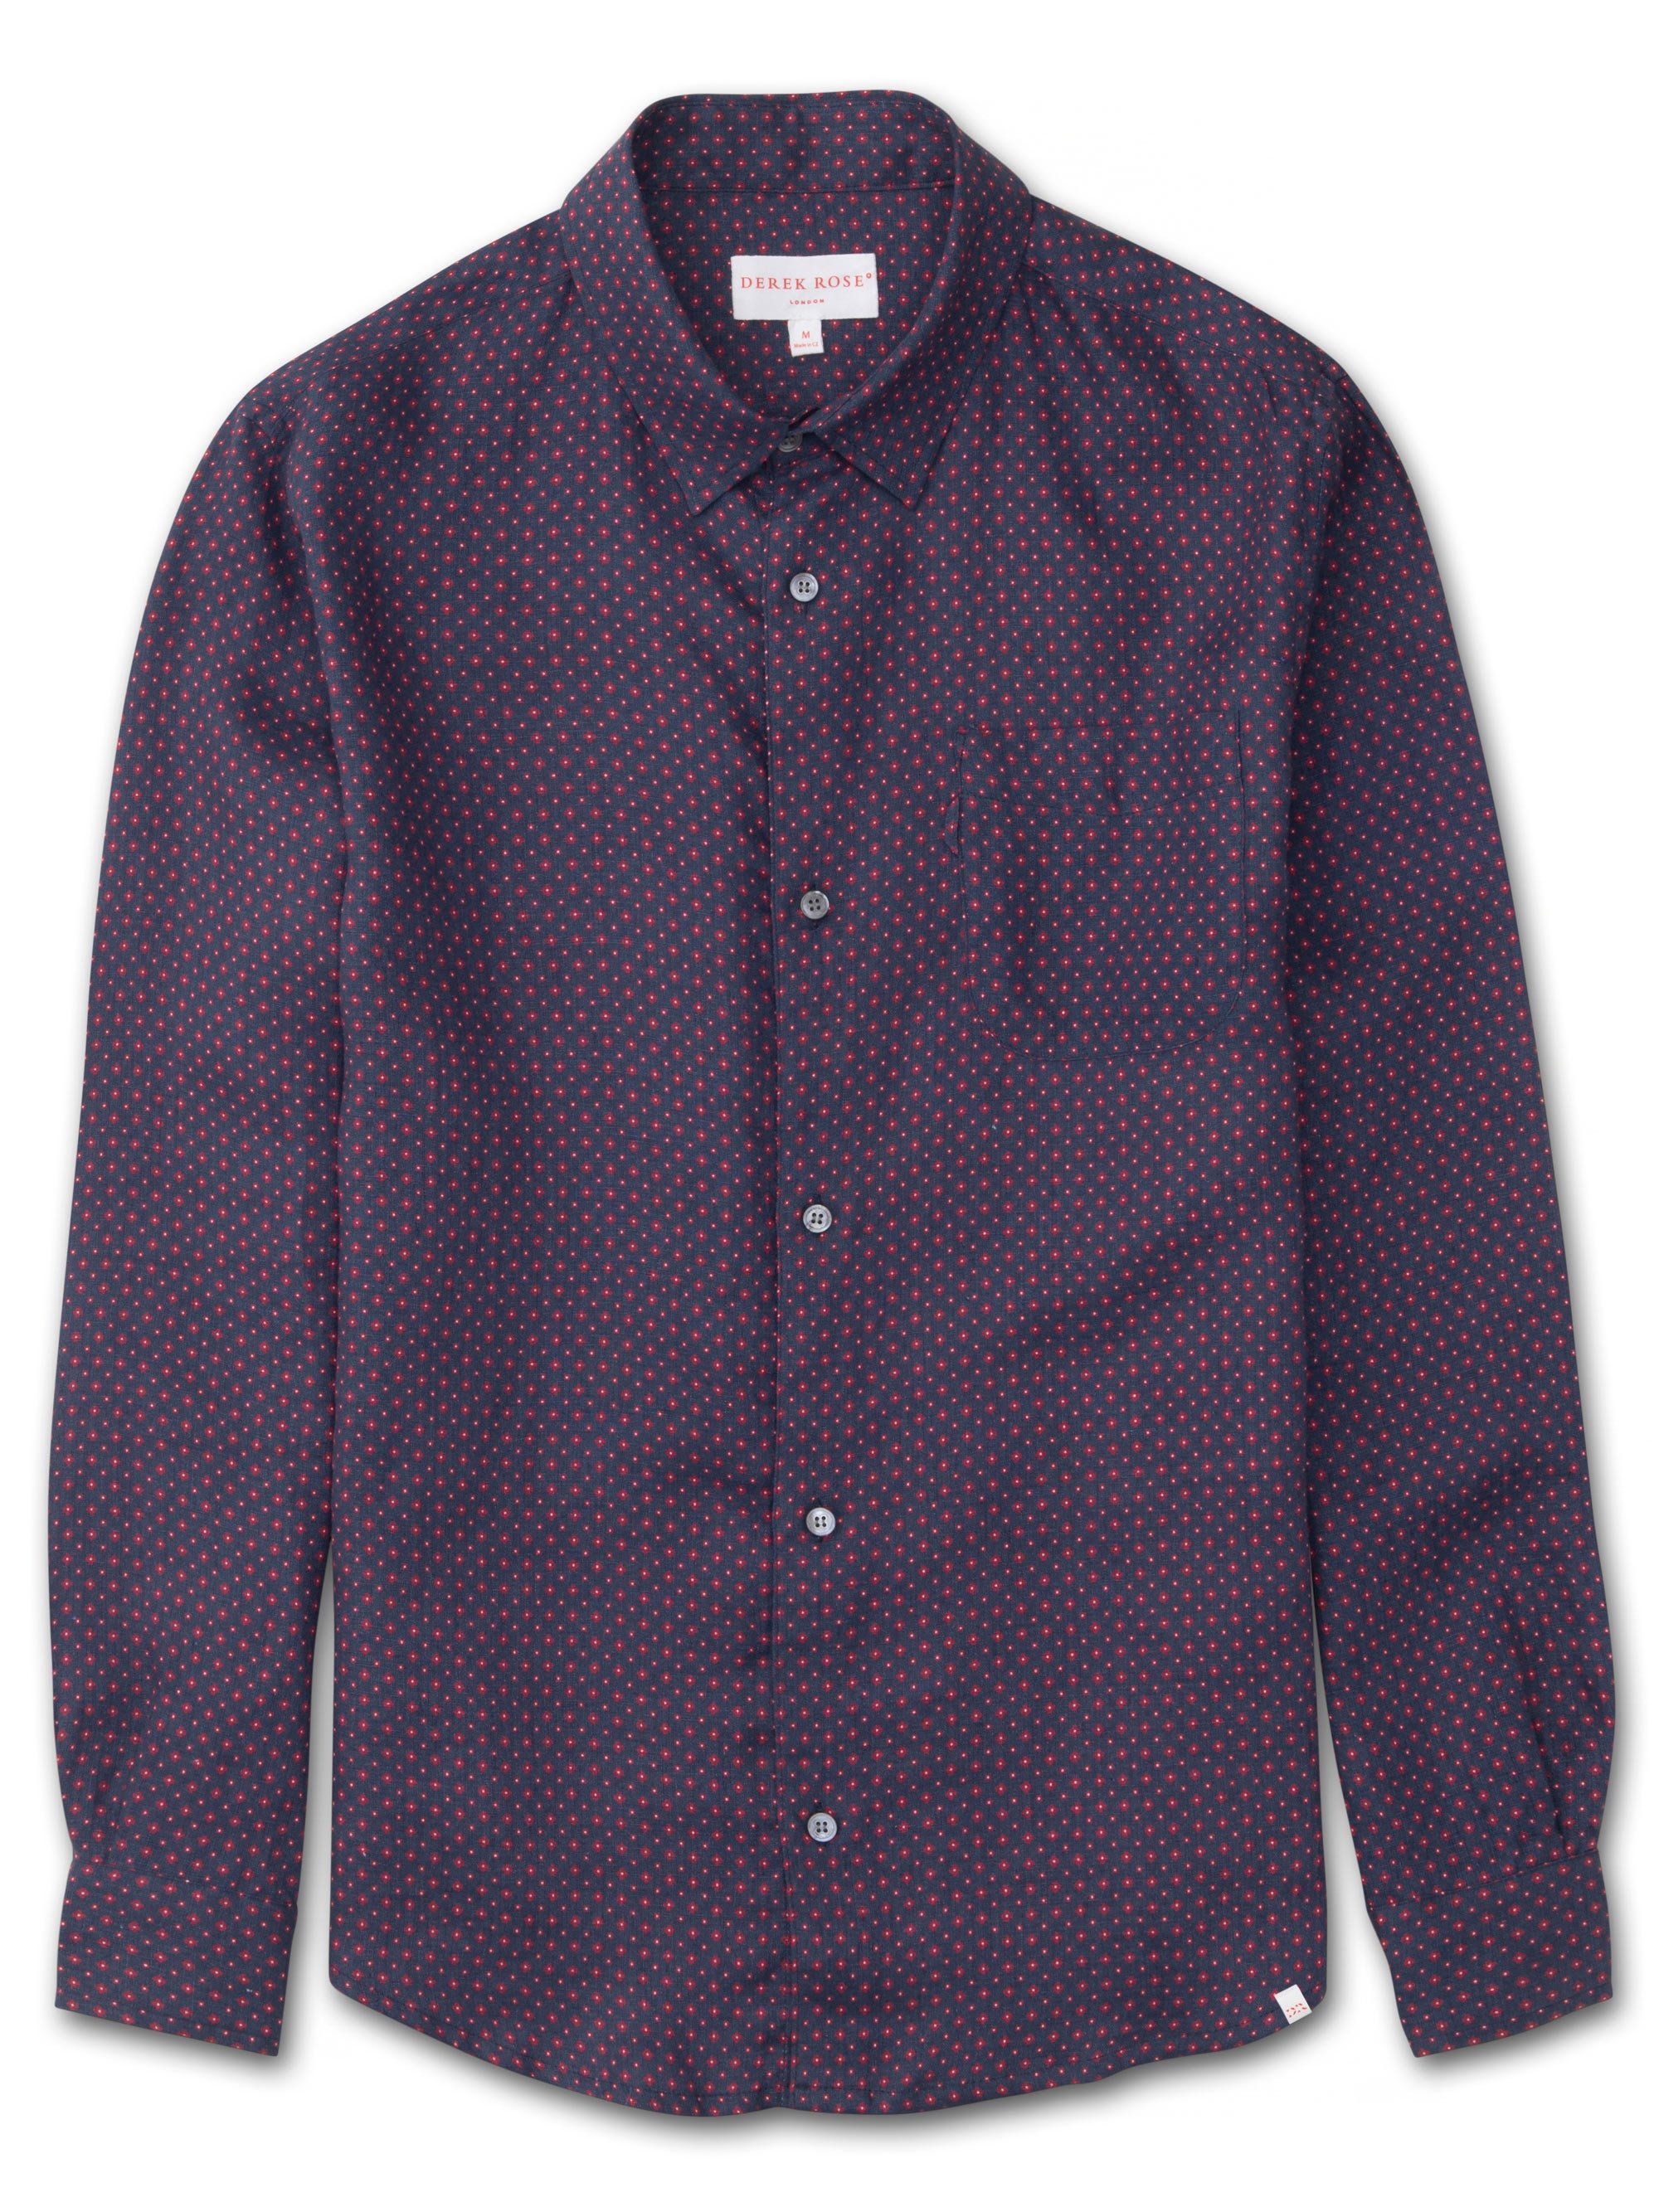 Men's Linen Shirt Milan 8 Pure Linen Navy